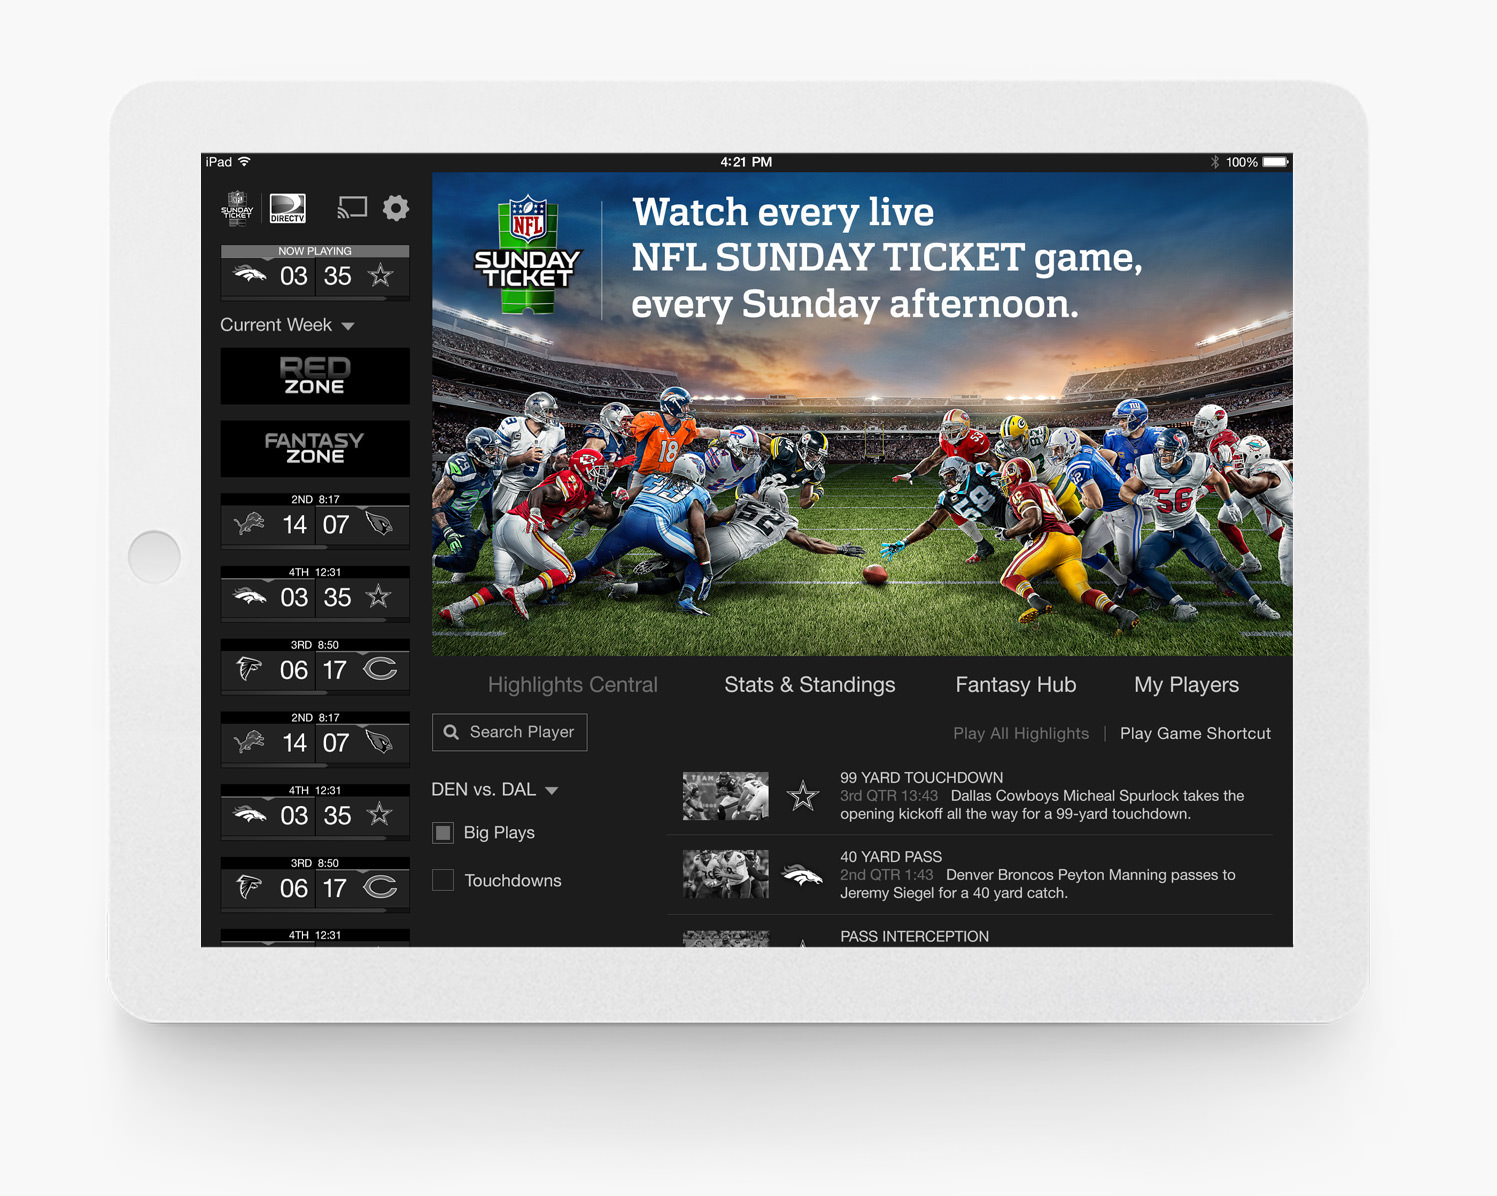 ent_mktg_nfl_ipad_nationalad_overlay.jpg